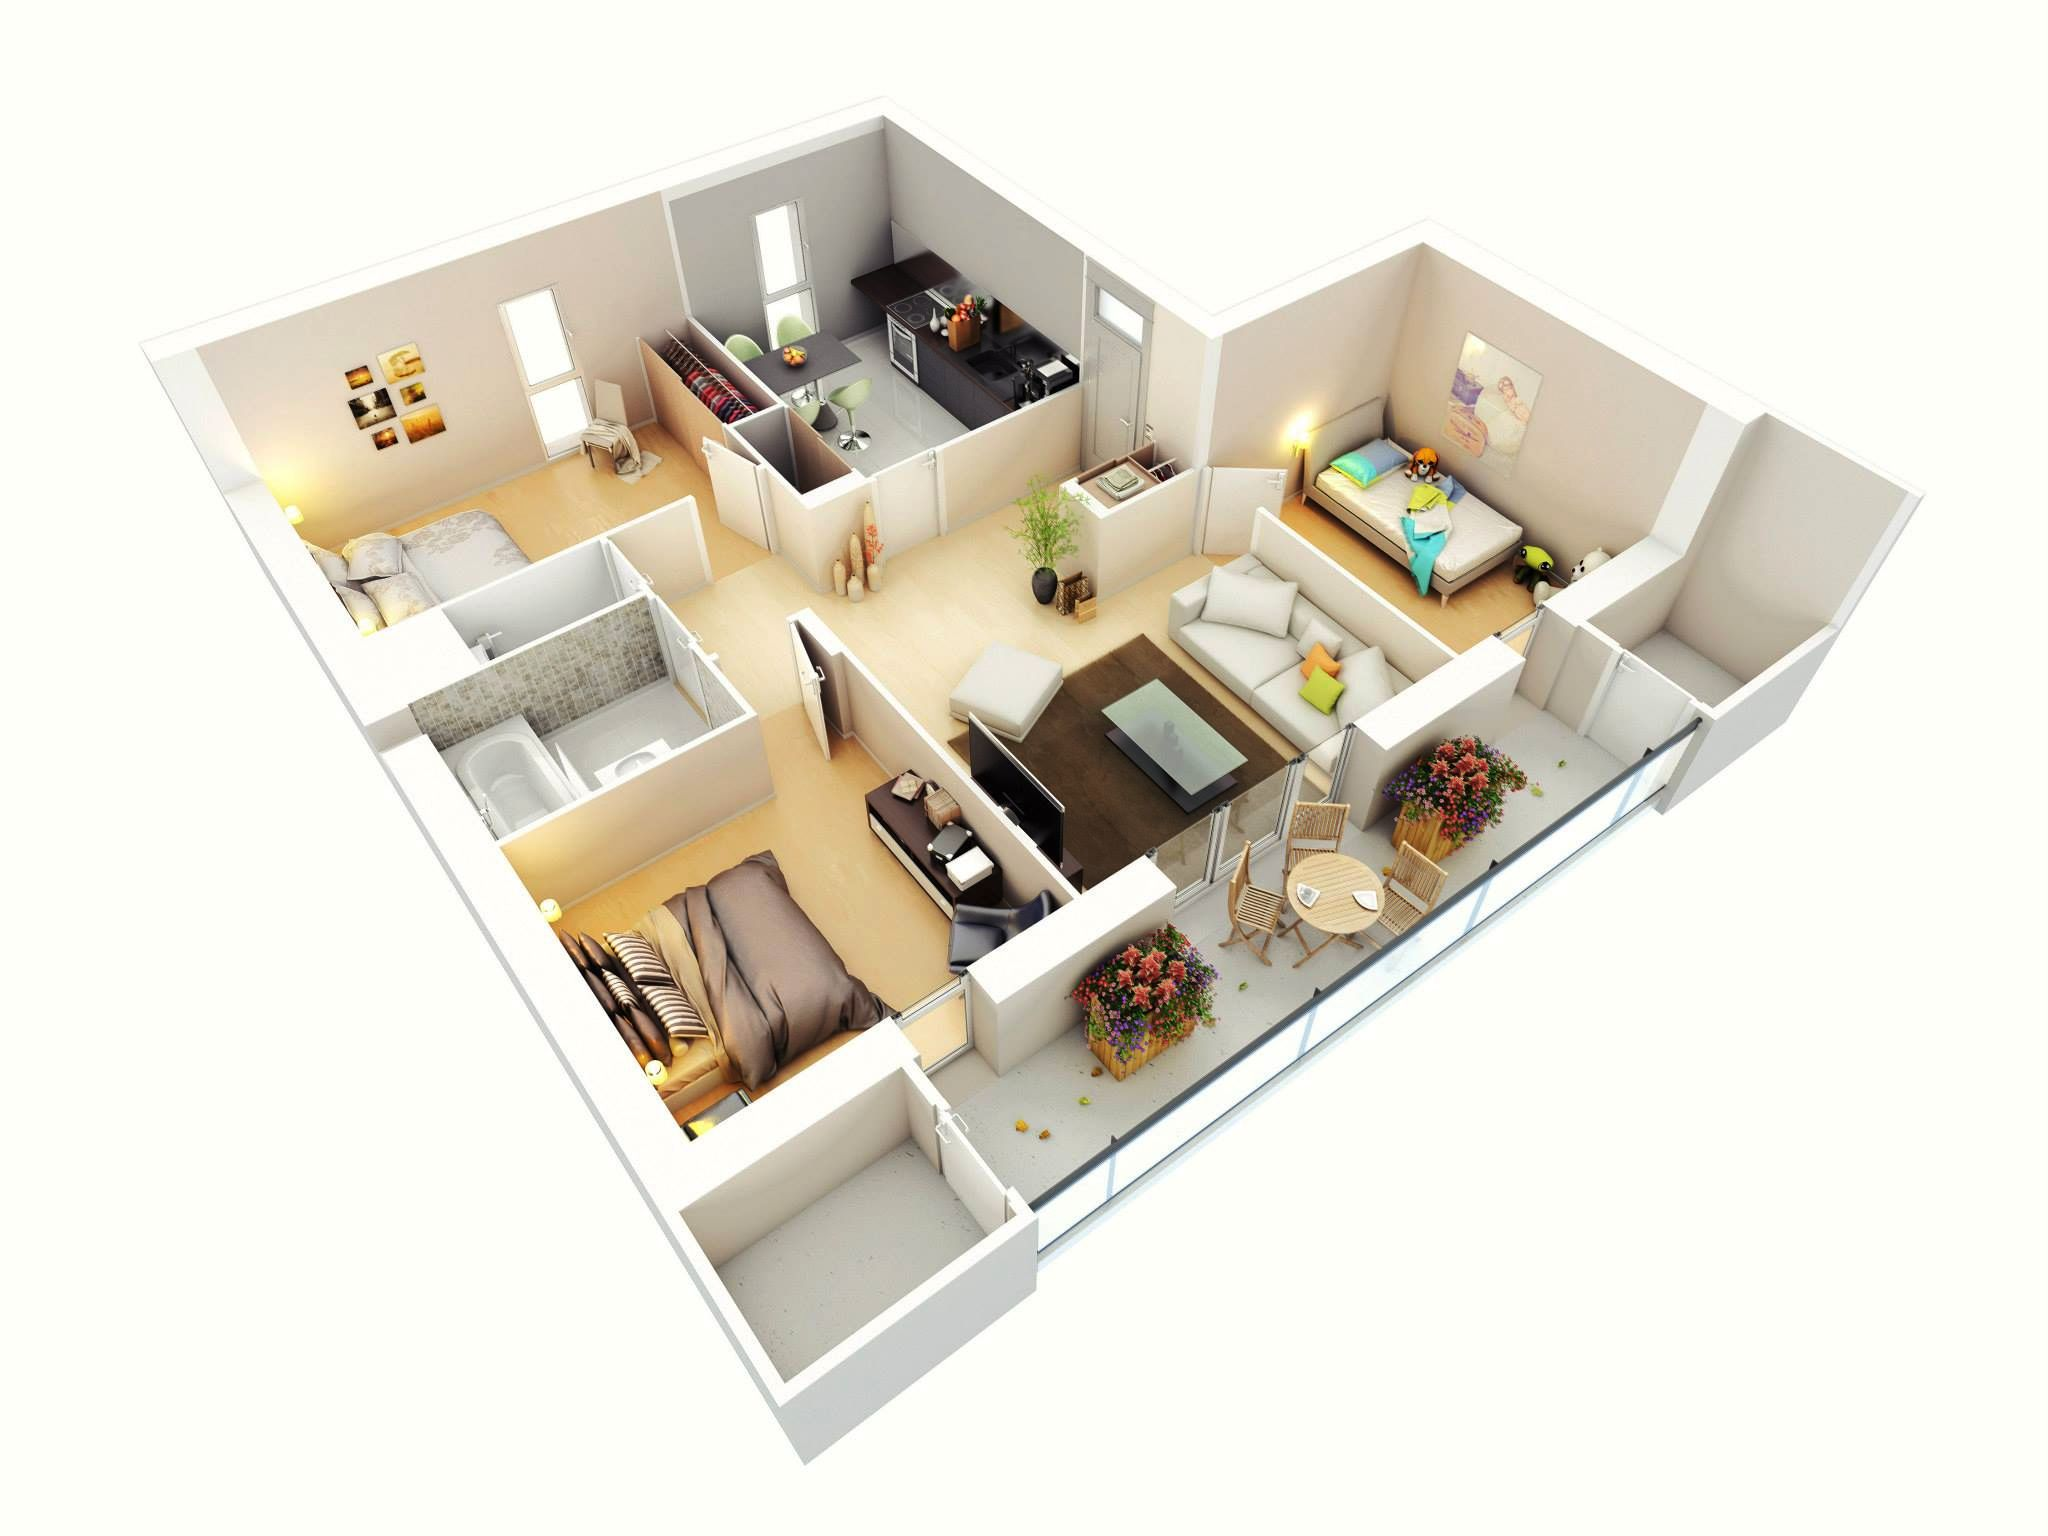 Understanding 3d floor plans and finding the right layout for you home decorating trends homedit malvernweather Choice Image